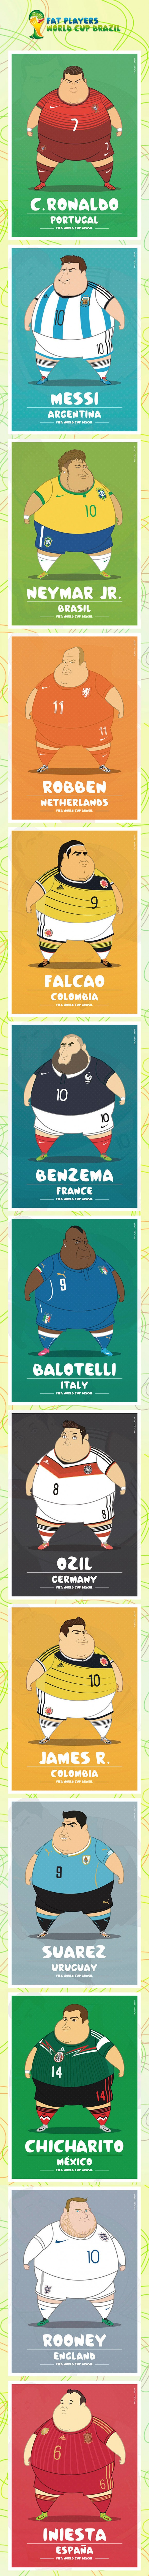 Fat players world cup brazil